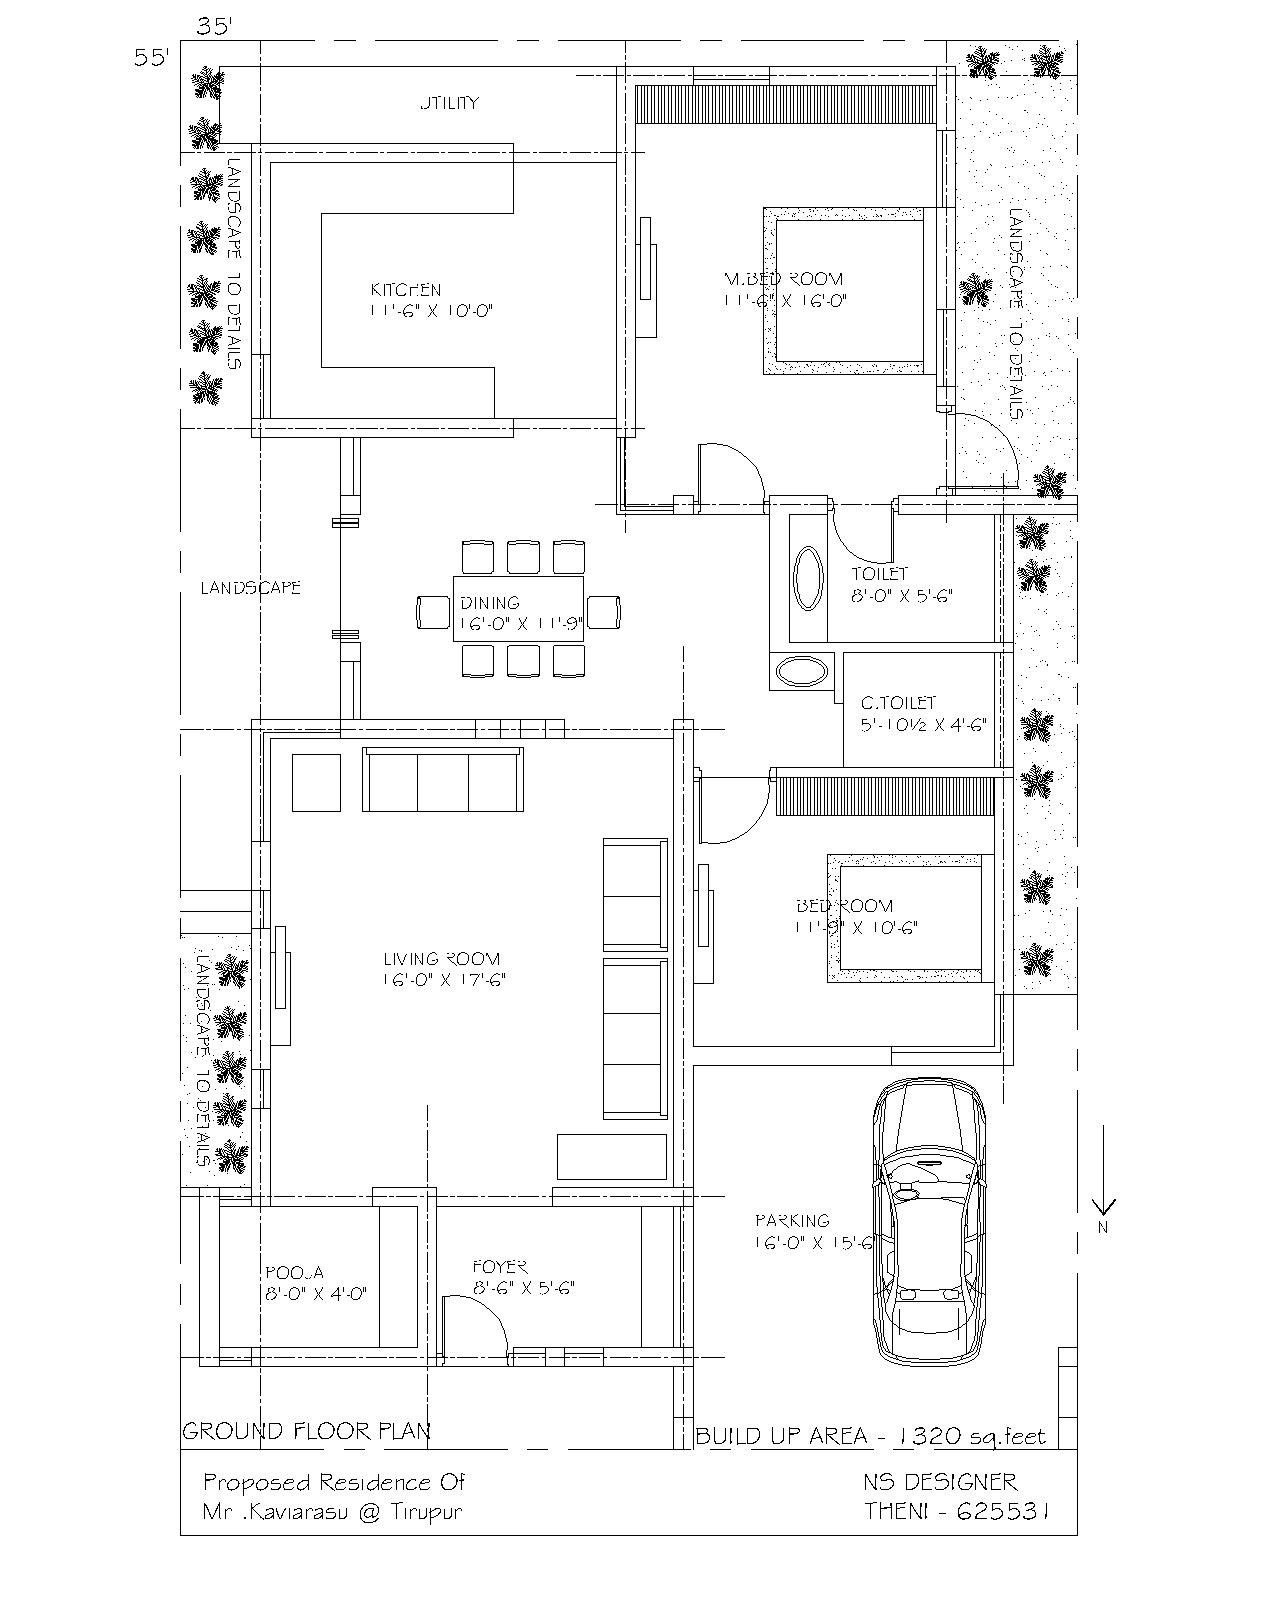 Software to Draw House Plans New Indian House Map Design software Susalo